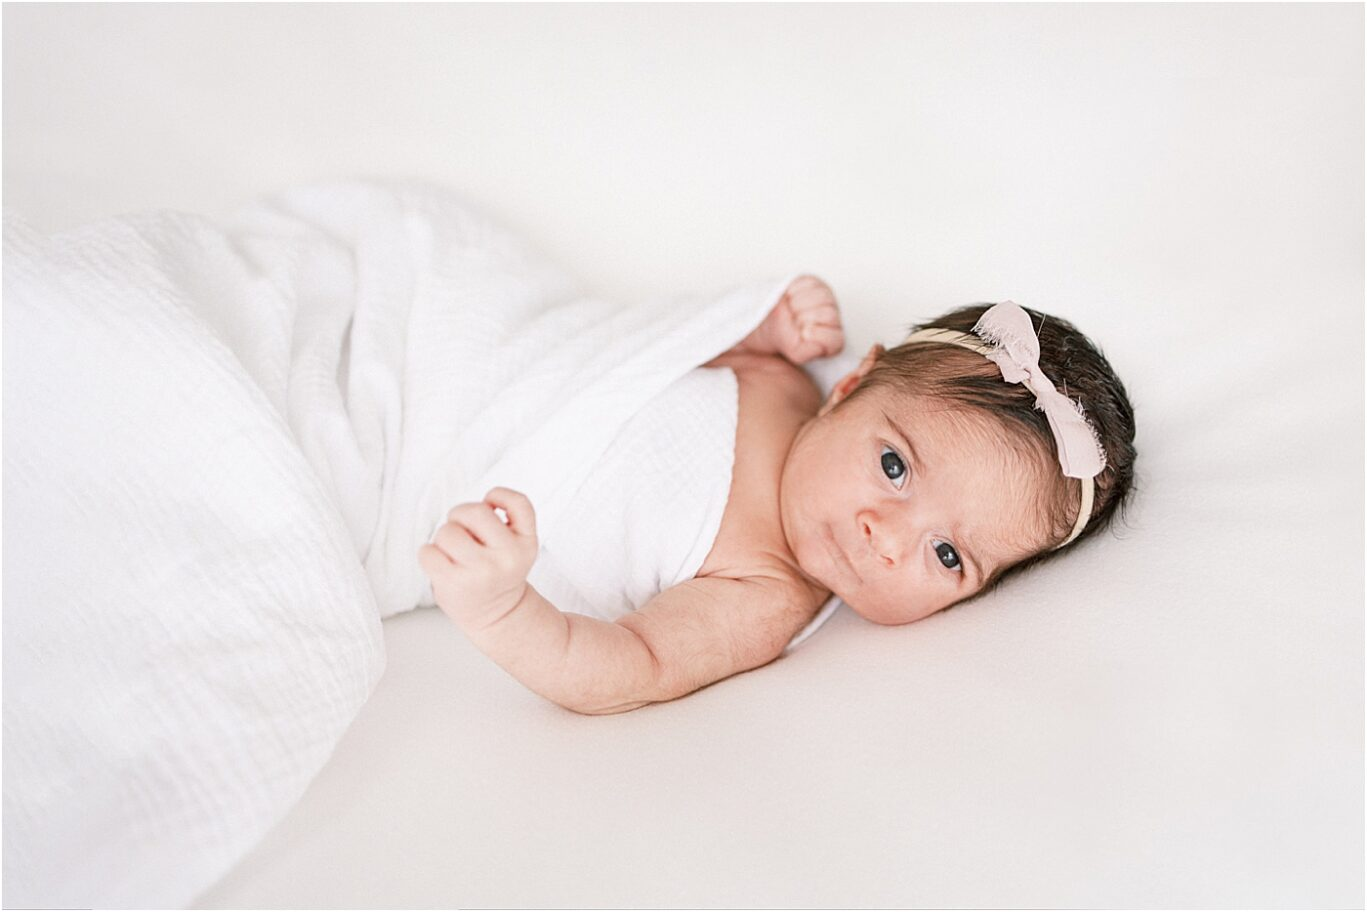 Newborn baby girl swaddled on a white blanket for newborn photos with Noblesville Indiana Newborn Photographer, Lindsay Konopa Photography.